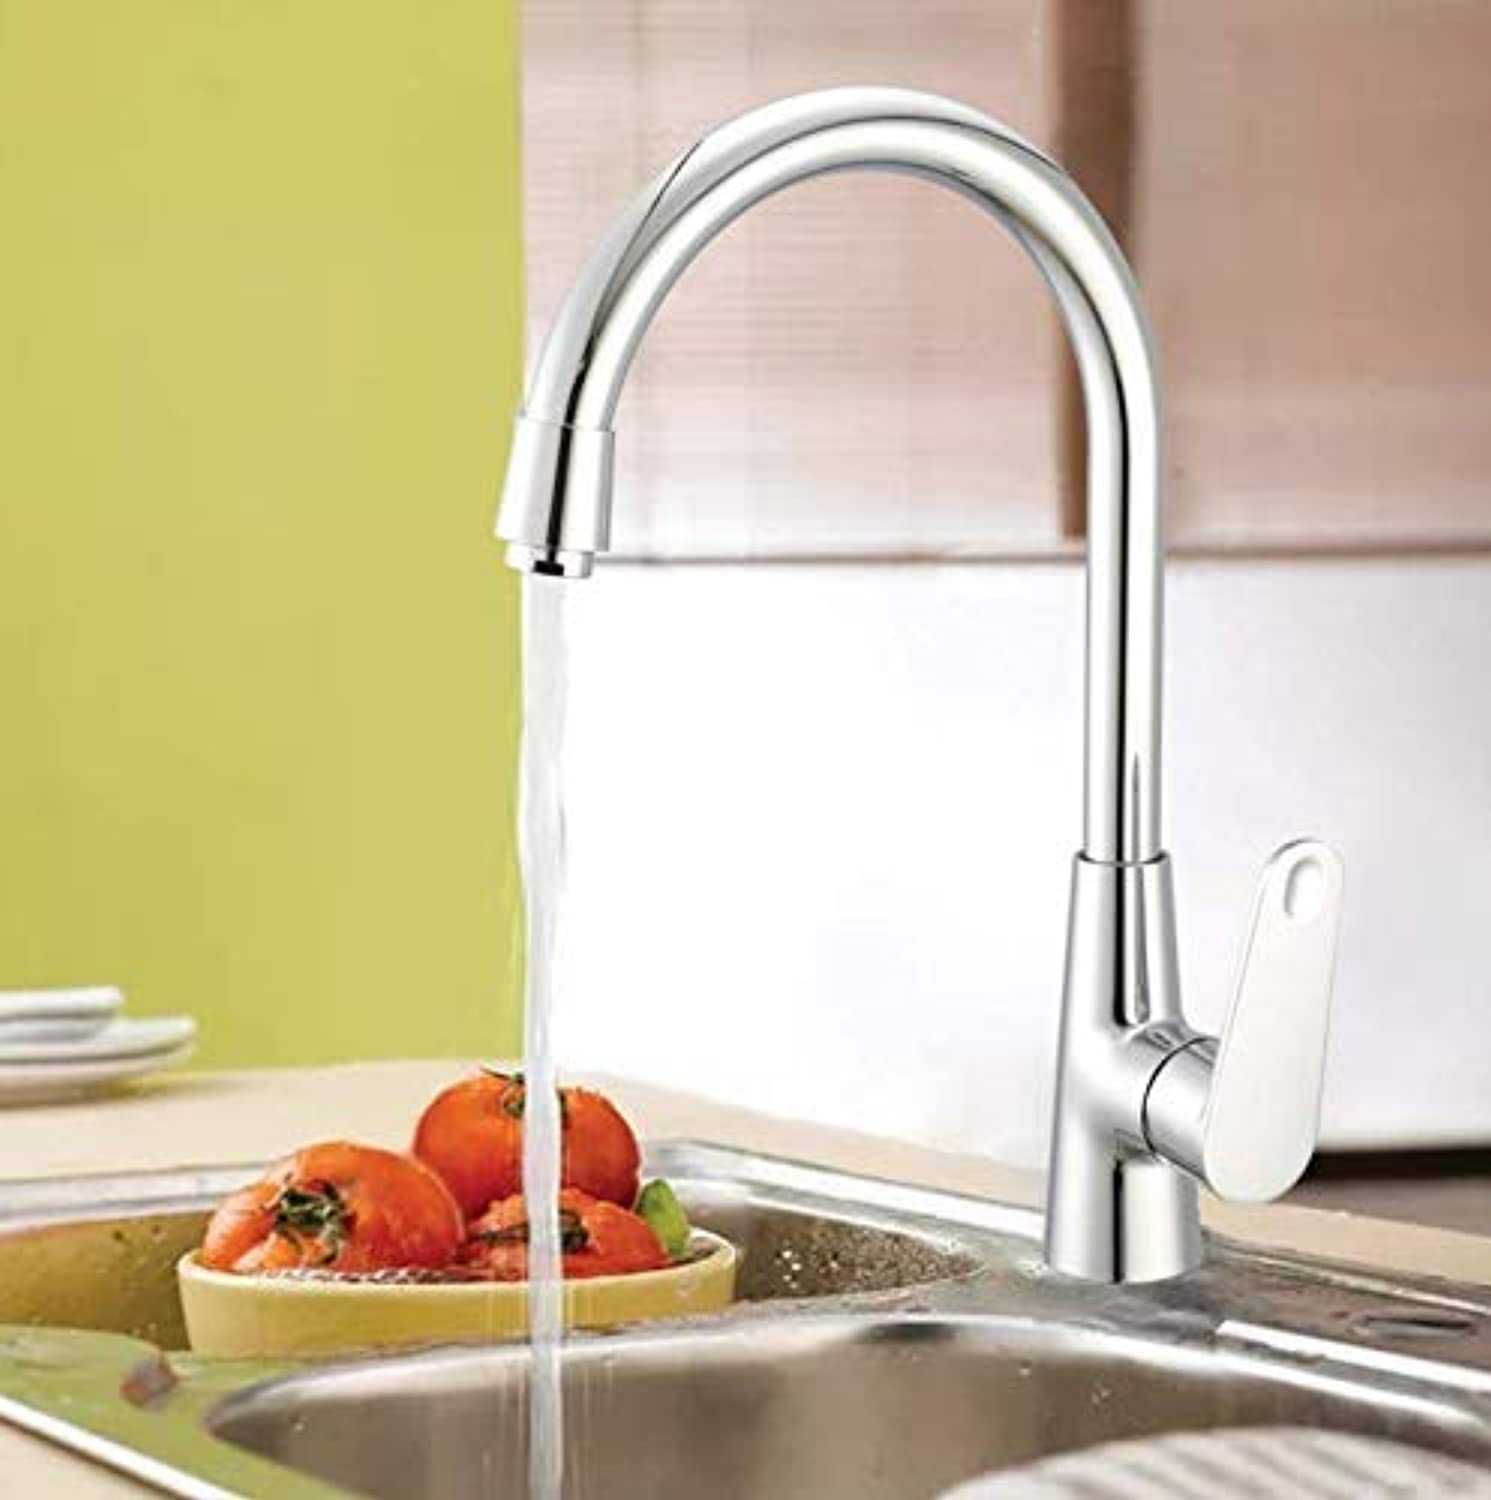 Oudan Taps Basin Faucet New Zinc Alloy Single Handle Single Hole High Body Faucet Hot And Cold Kitchen Faucet Taps (color   -, Size   -)